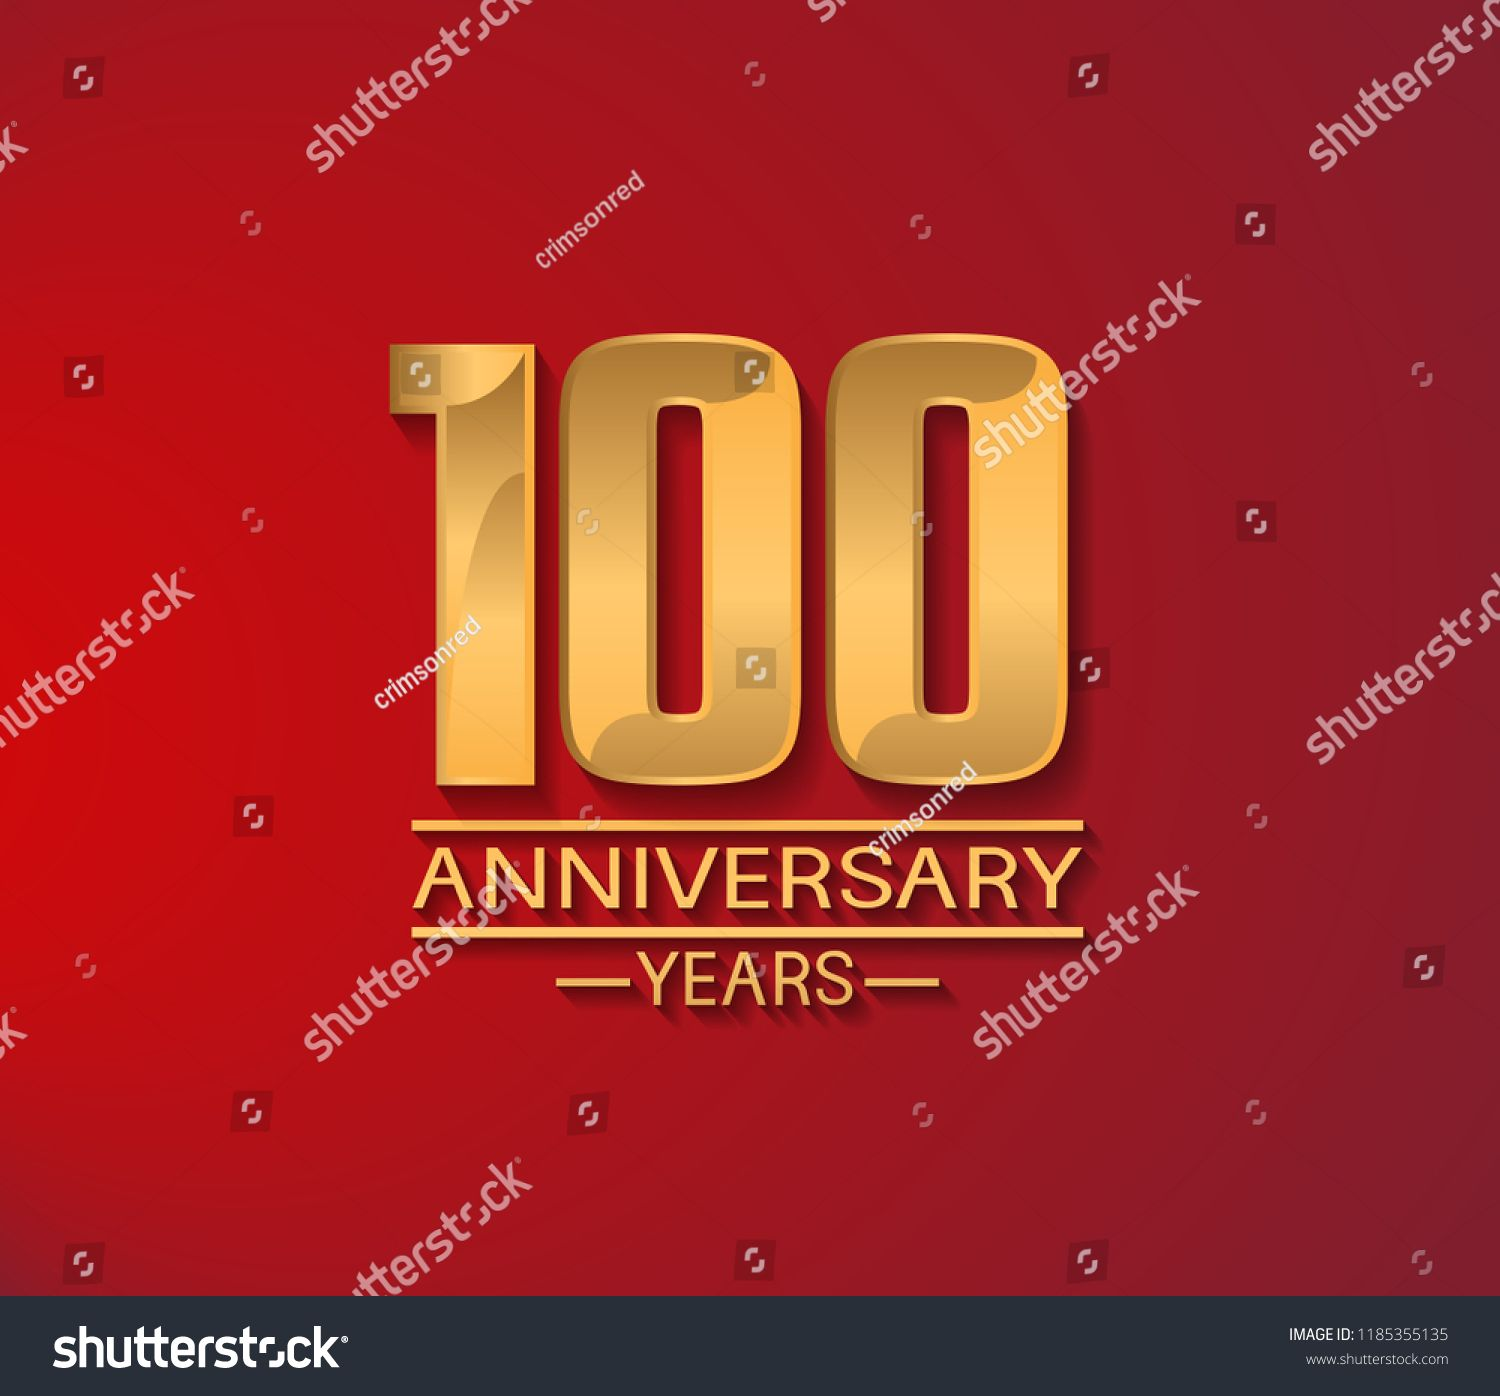 100 years golden shiny anniversary simple design with red